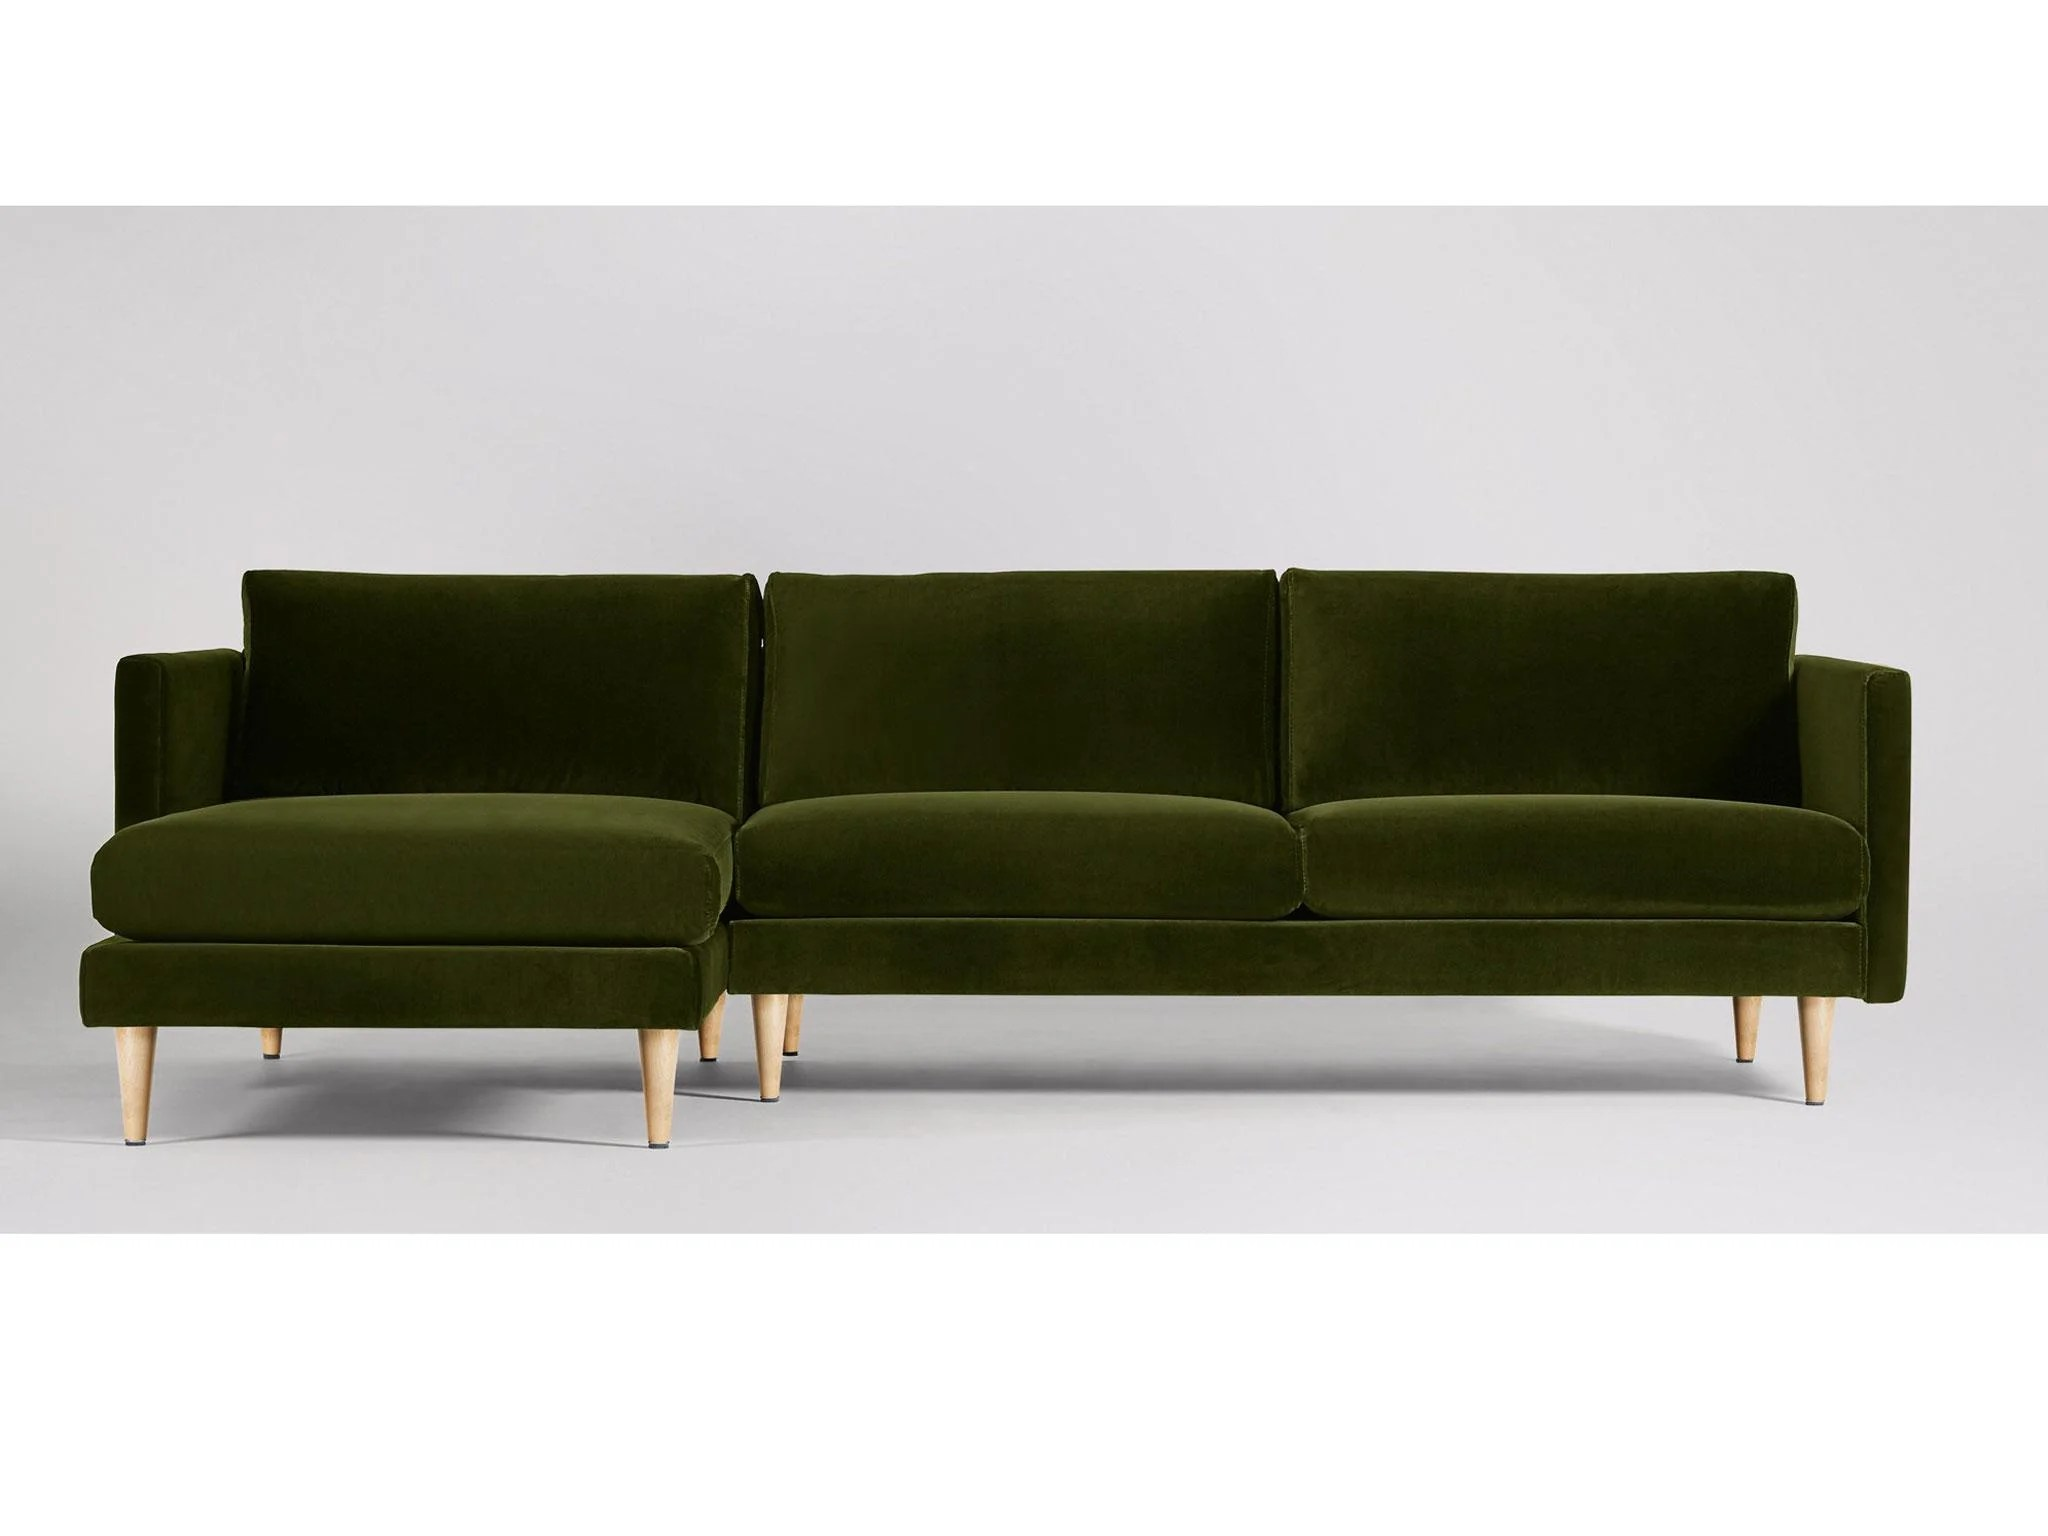 htl sofa stockists uk homcom linen lounge sleeper 11 best corner sofas the independent swoon editions has a hint of mid century style with tapered wood legs thin arms and deep seat but its character easily changes depending on how